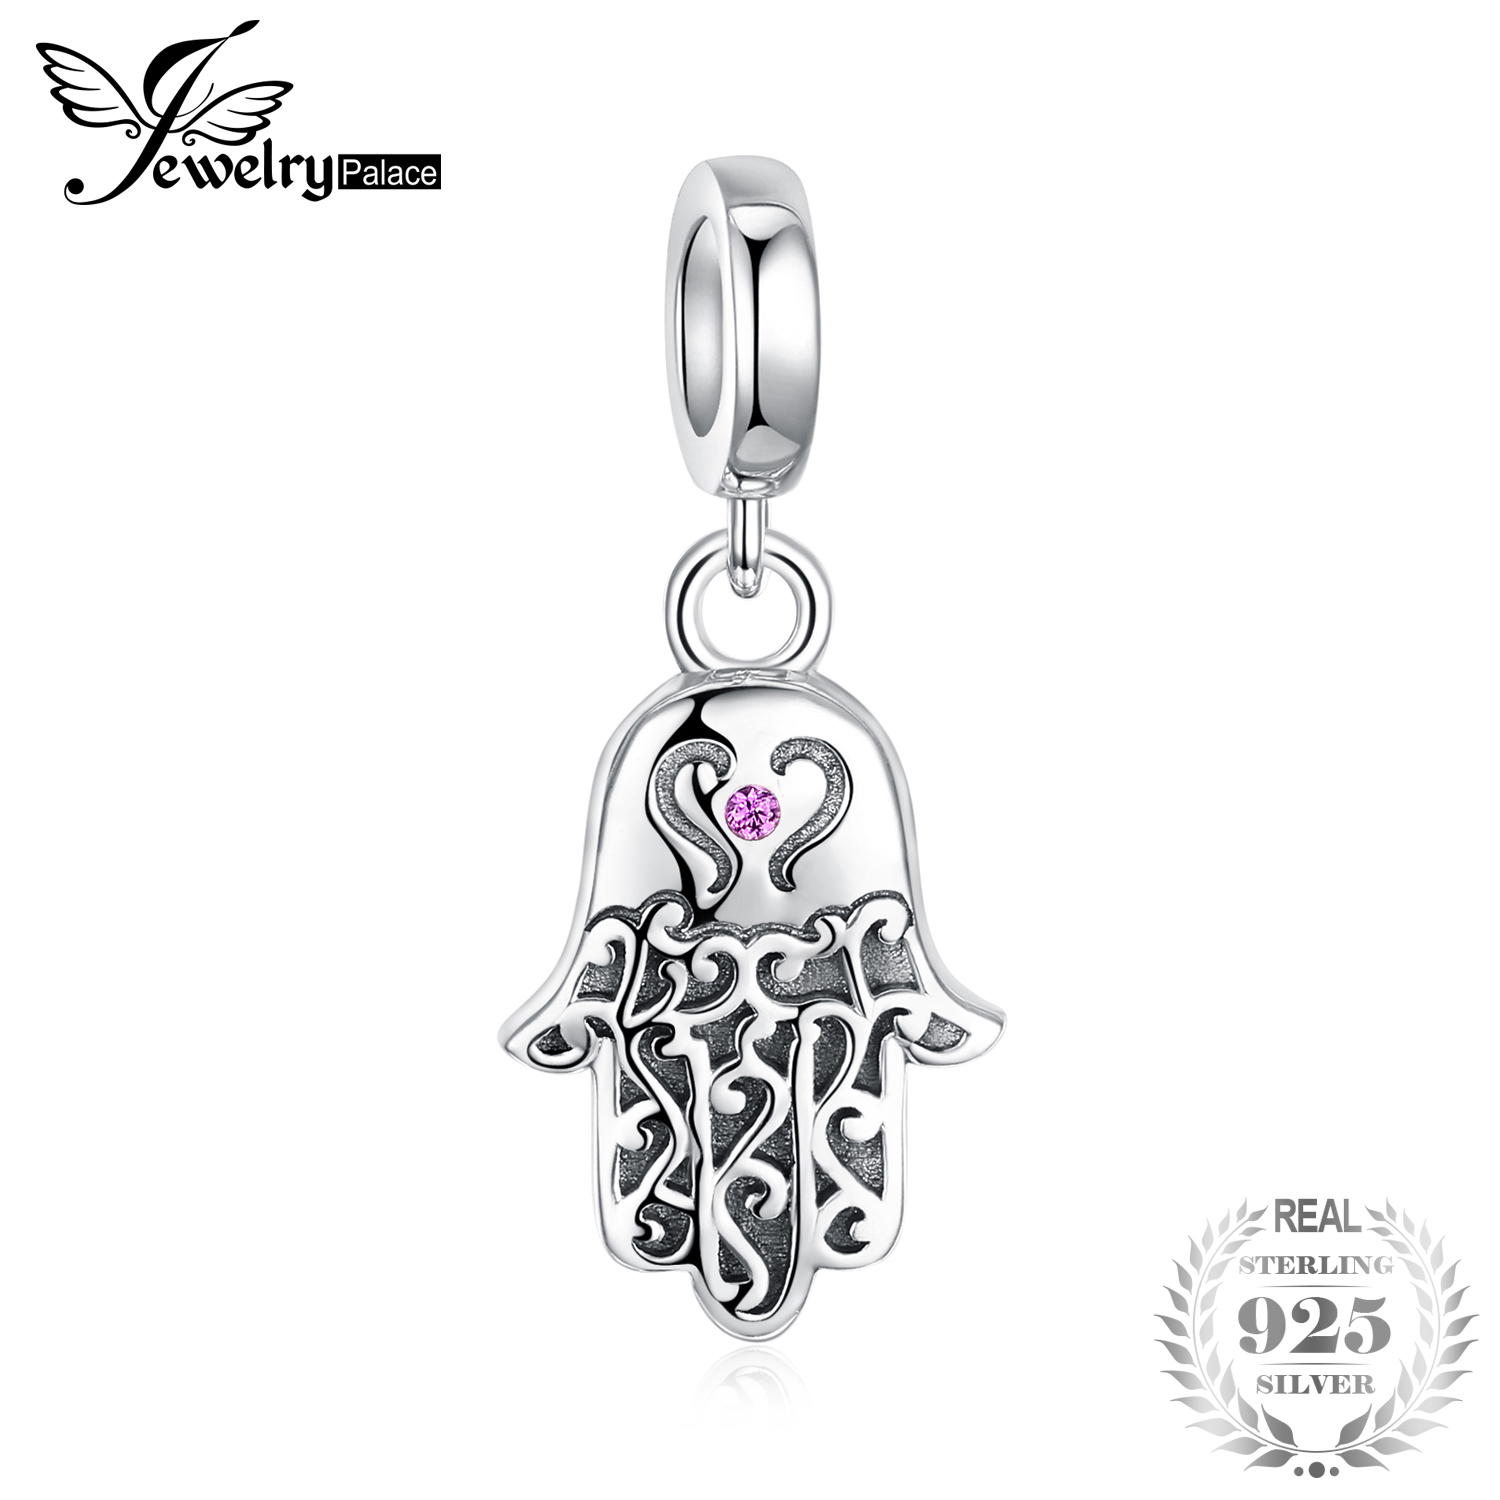 UnermüDlich Jewelrypalace Rosa Zirkonia 925 Sterling Silber Fatima Hand Baumeln Perle Charme Fit Armbänder Mode Diy Perle Charme Edler Schmuck